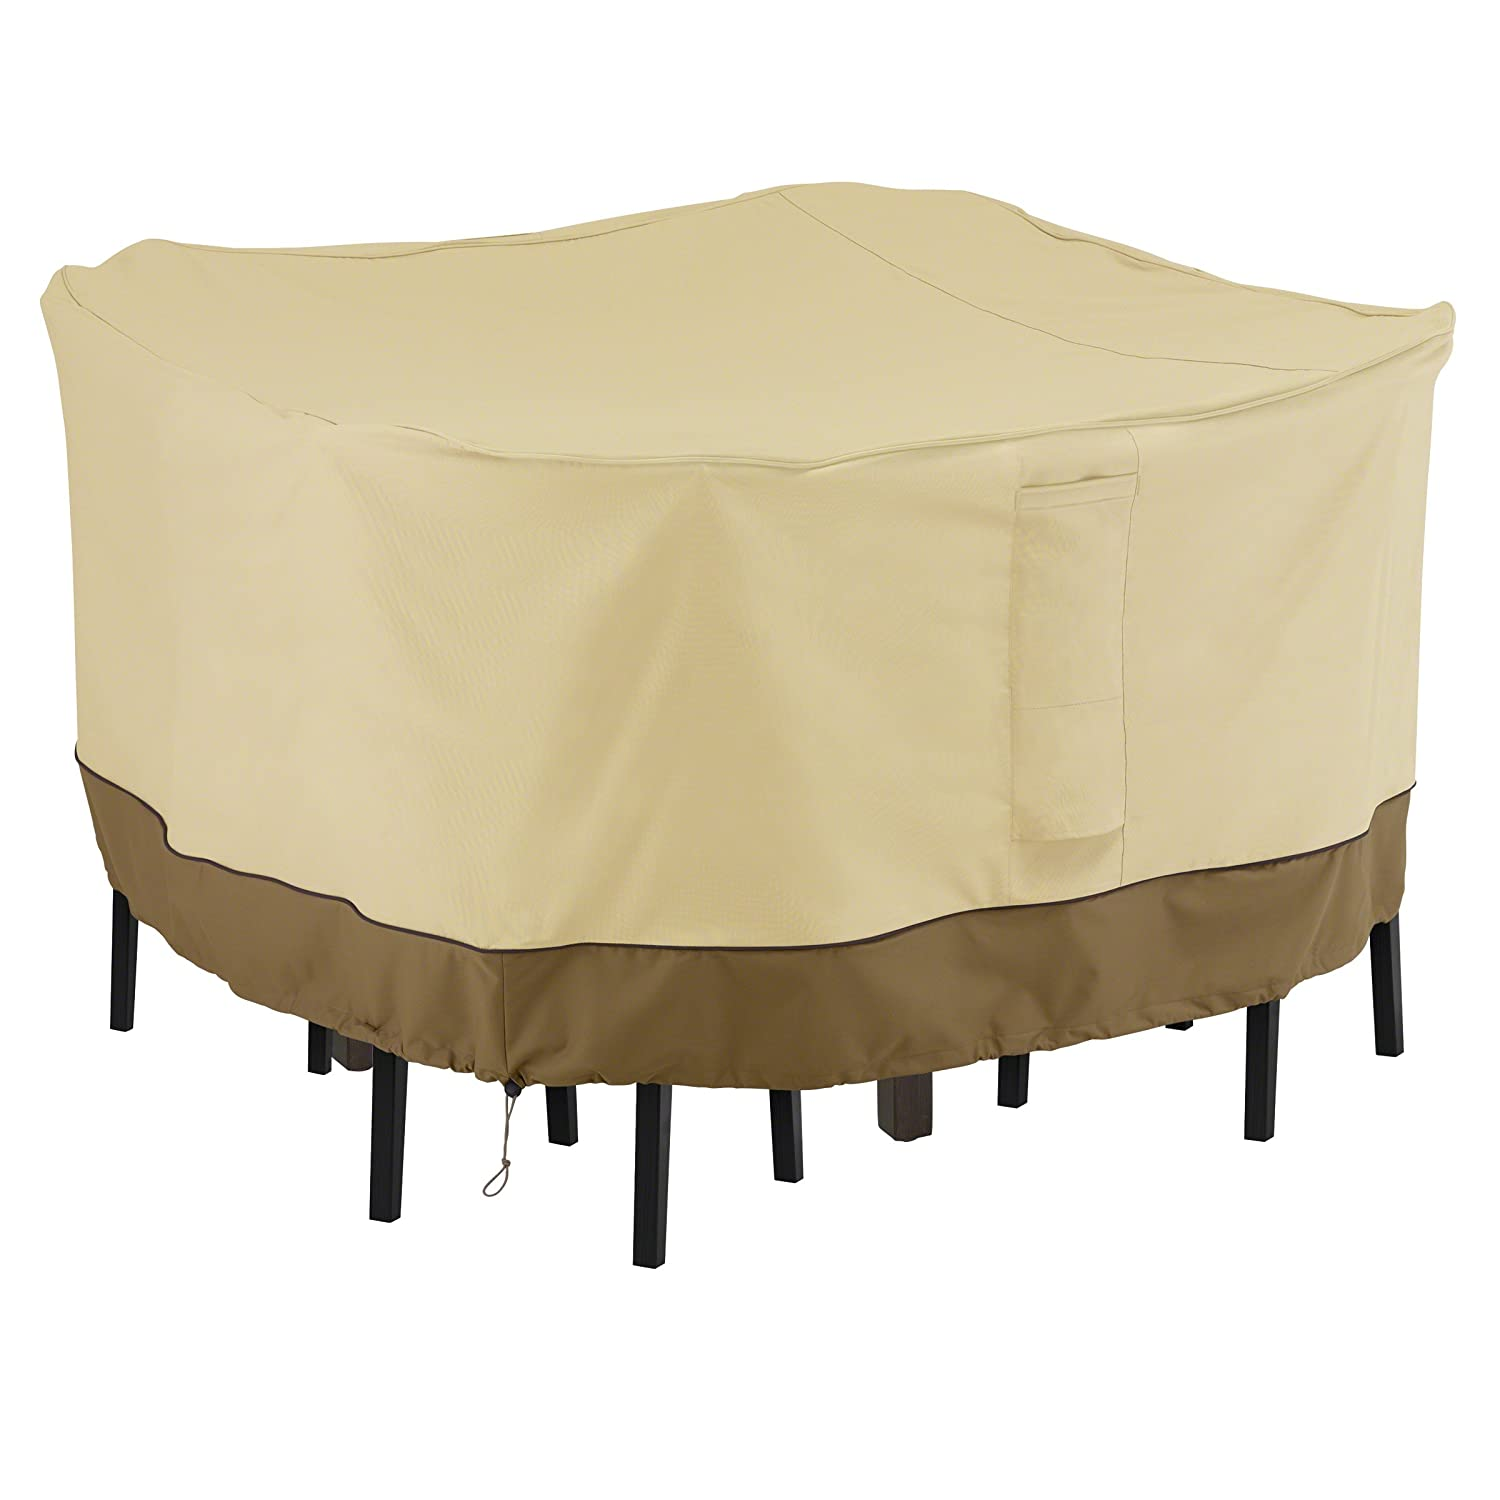 Classic Accessories Veranda Square Bar Height Table Chair Set Cover, Medium